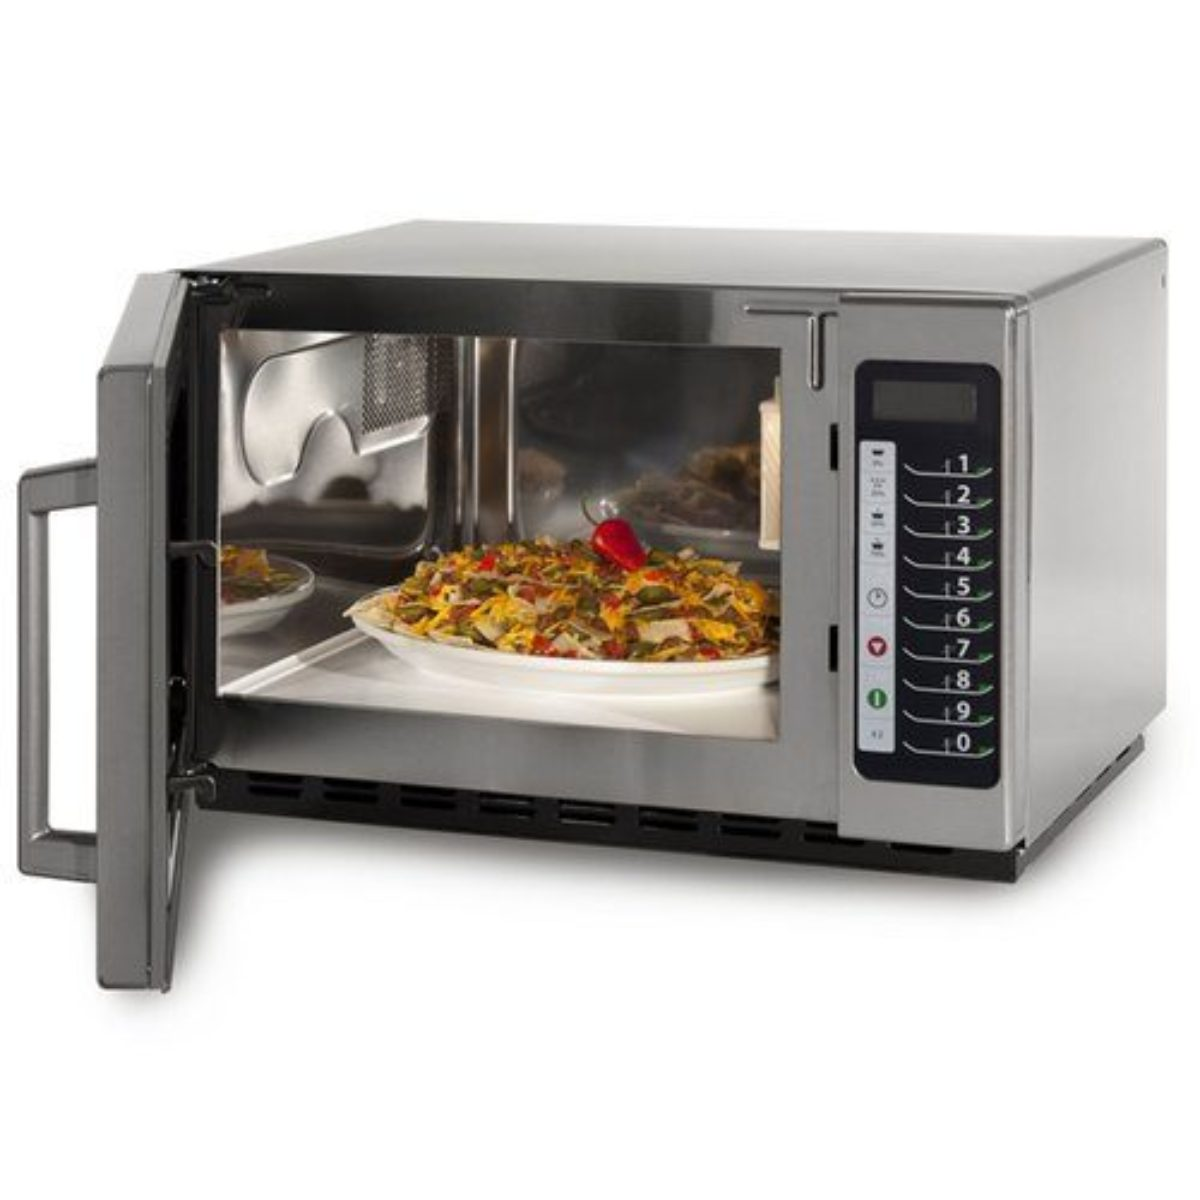 menumaster commercial microwave oven india